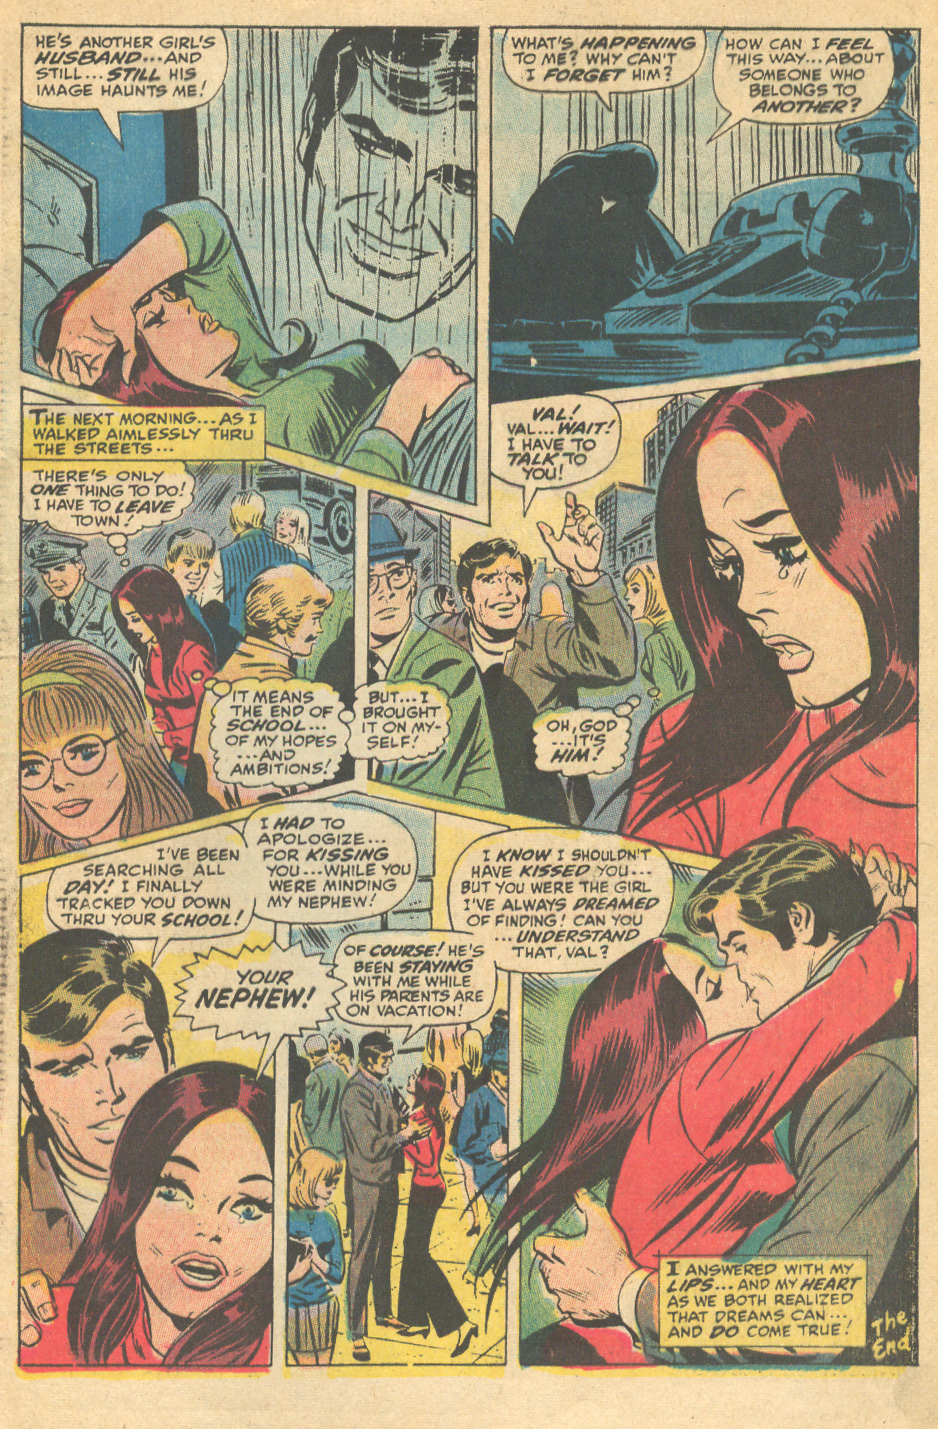 John Romita, Sr. romance comic book Marvel floating heads in comics